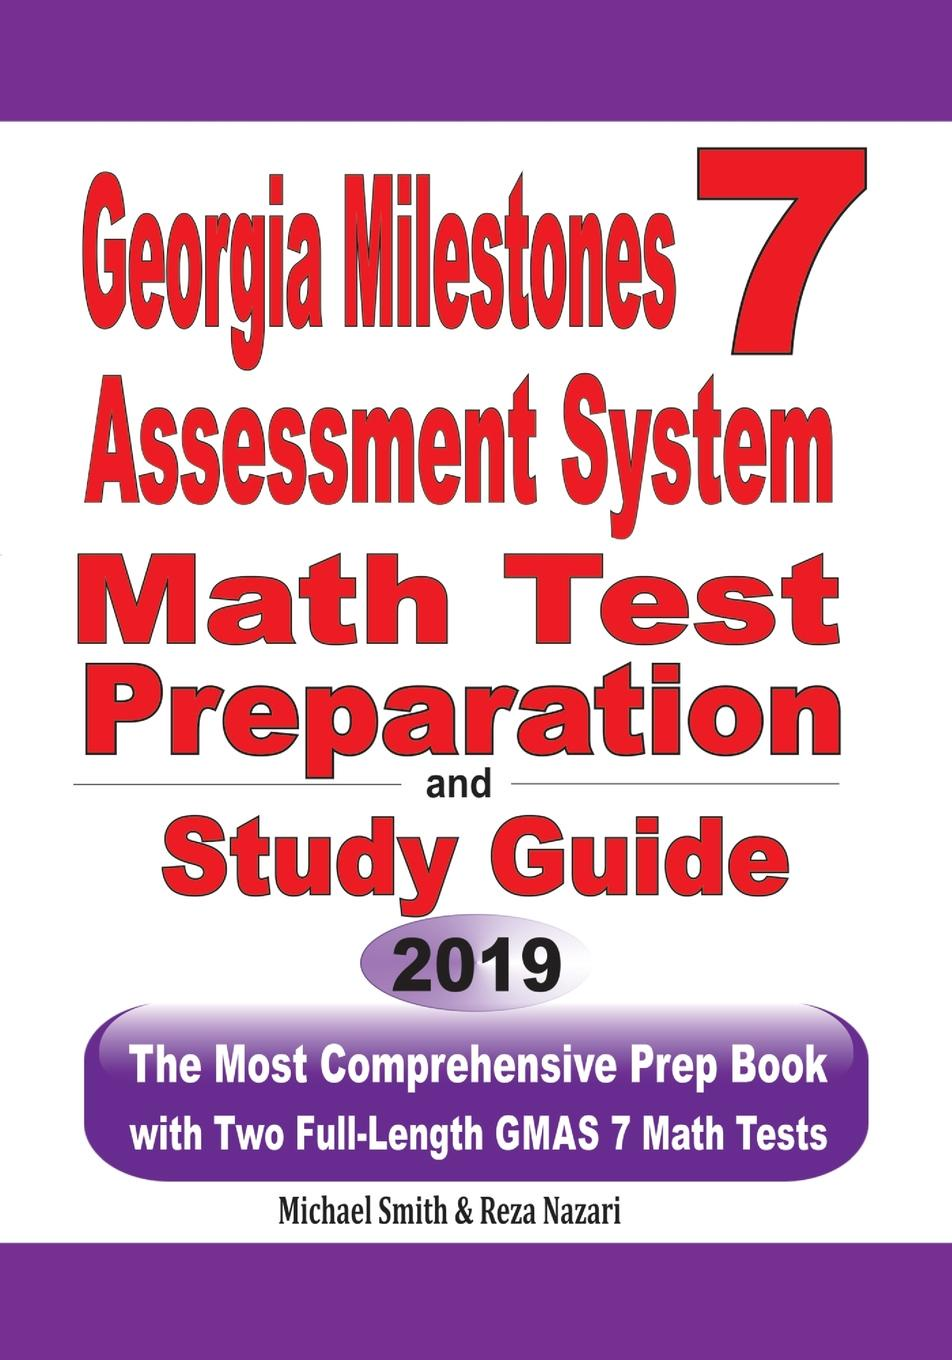 Michael Smith, Reza Nazari Georgia Milestones Assessment System 7 Math Test Preparation and Study Guide. The Most Comprehensive Prep Book with Two Full-Length GMAS Math Tests